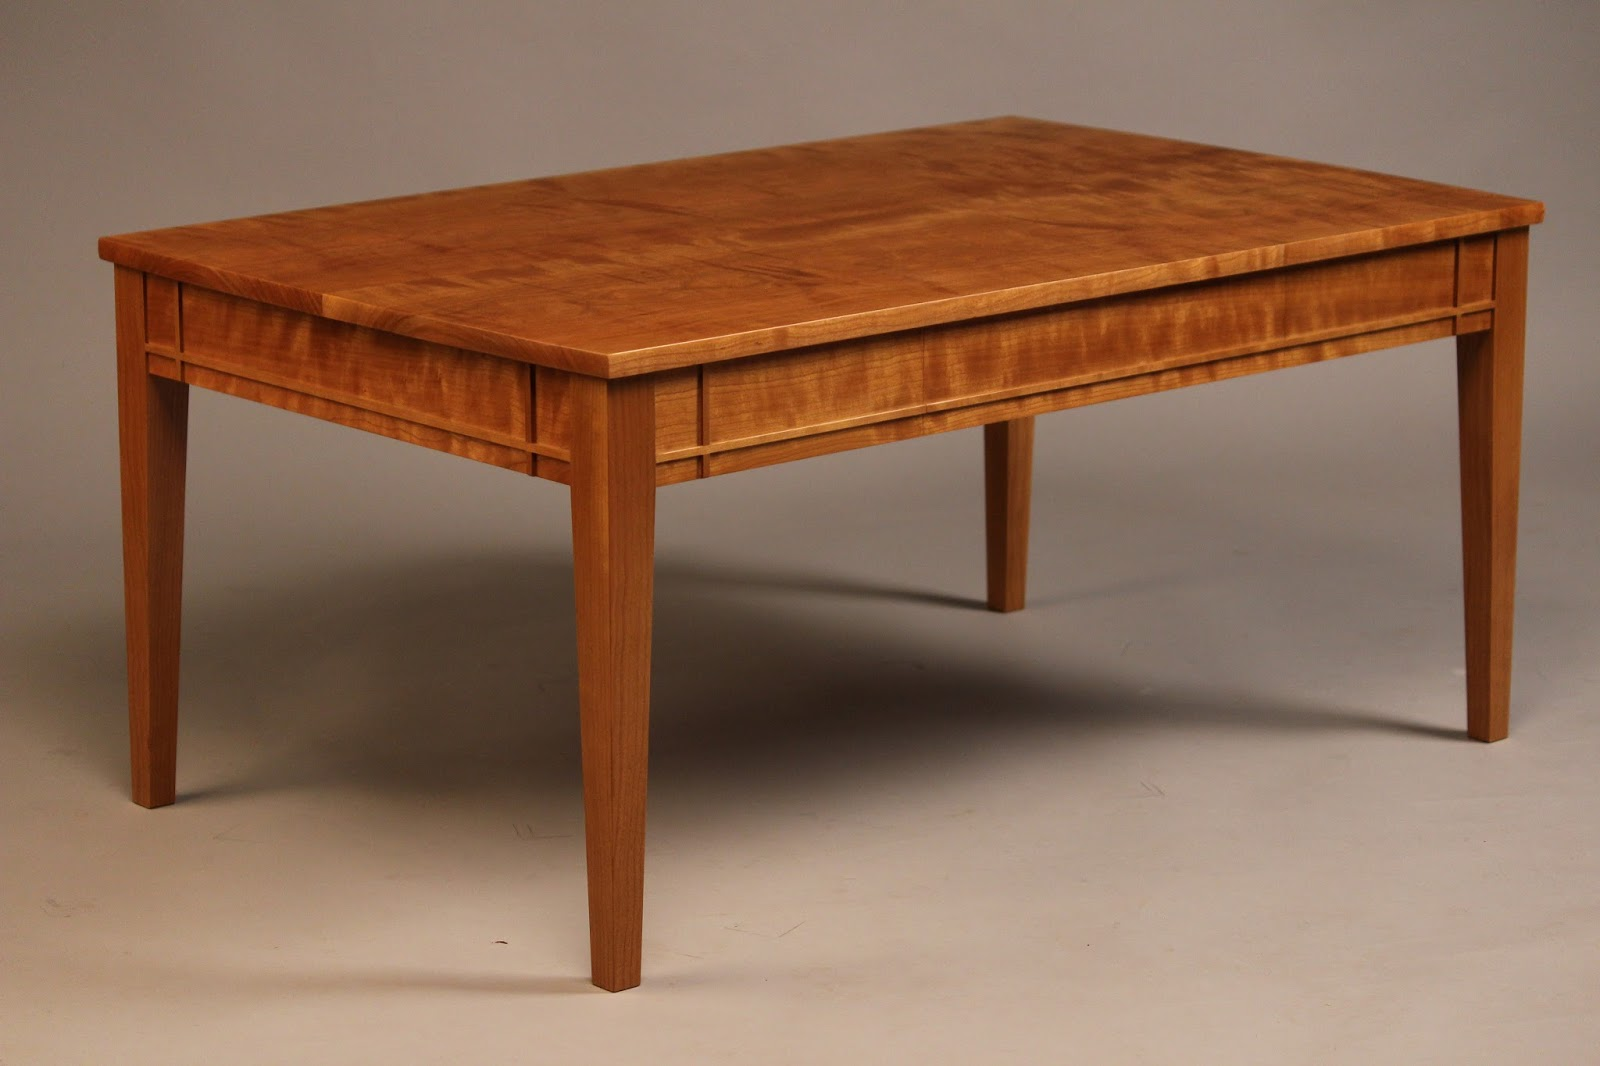 Curly Cherry Table